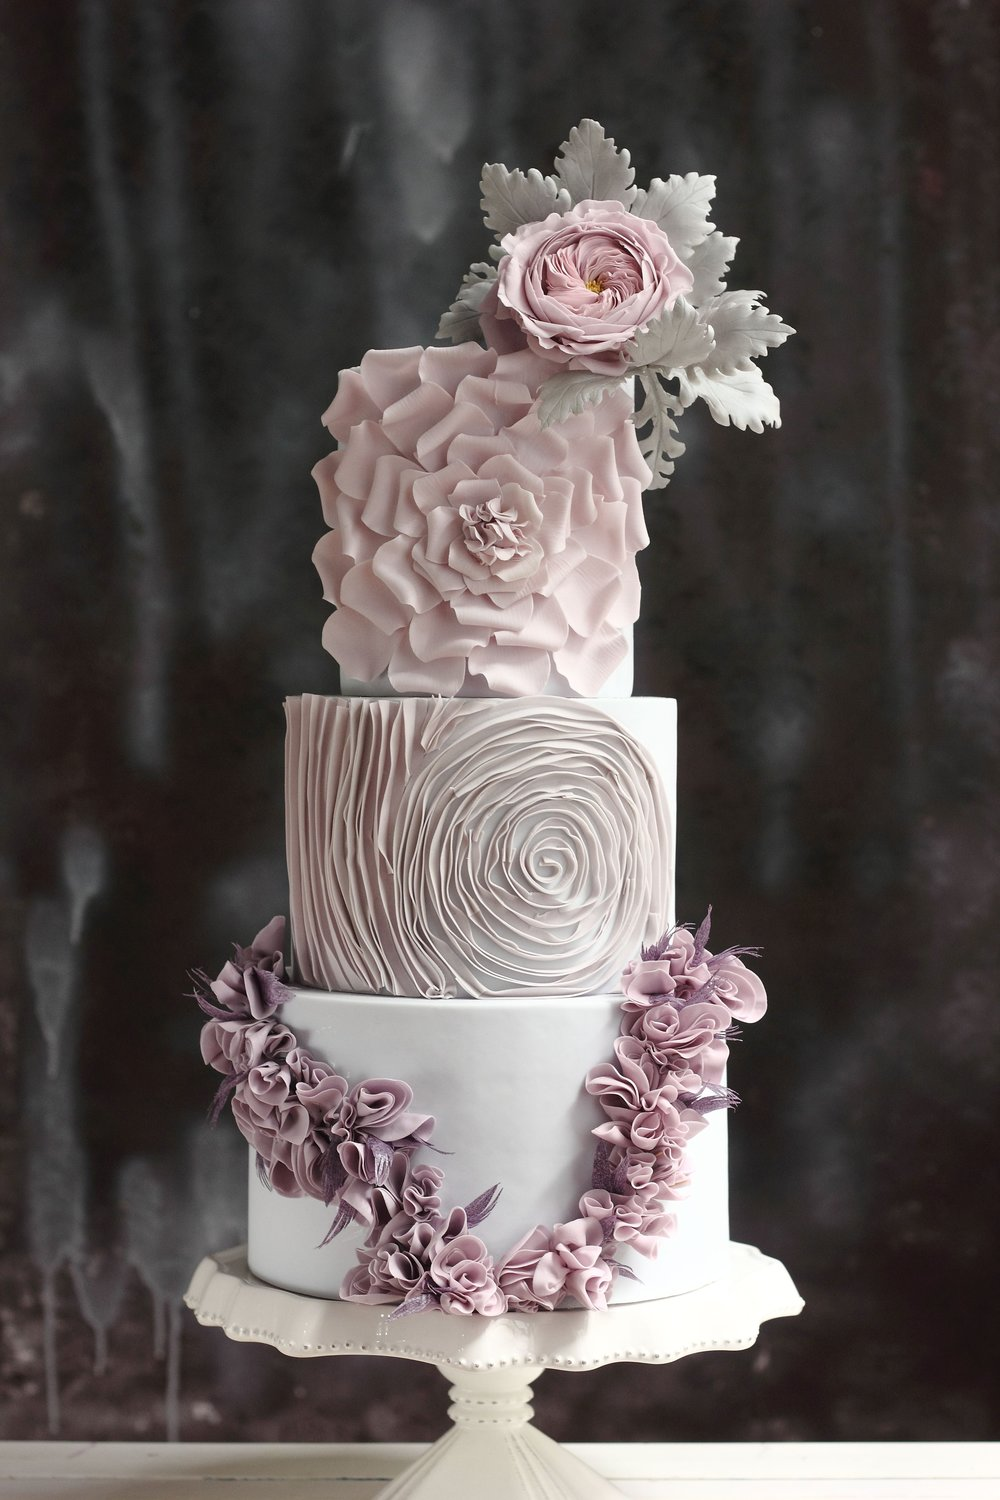 Cake by Jessica MV of Floral Cakes by Jessica MV - A custom design like this one takes hours of labor, and years of expertise. Ruffles are beautiful, but it can take upwards of 10-12 hours to cover a single cake tier.